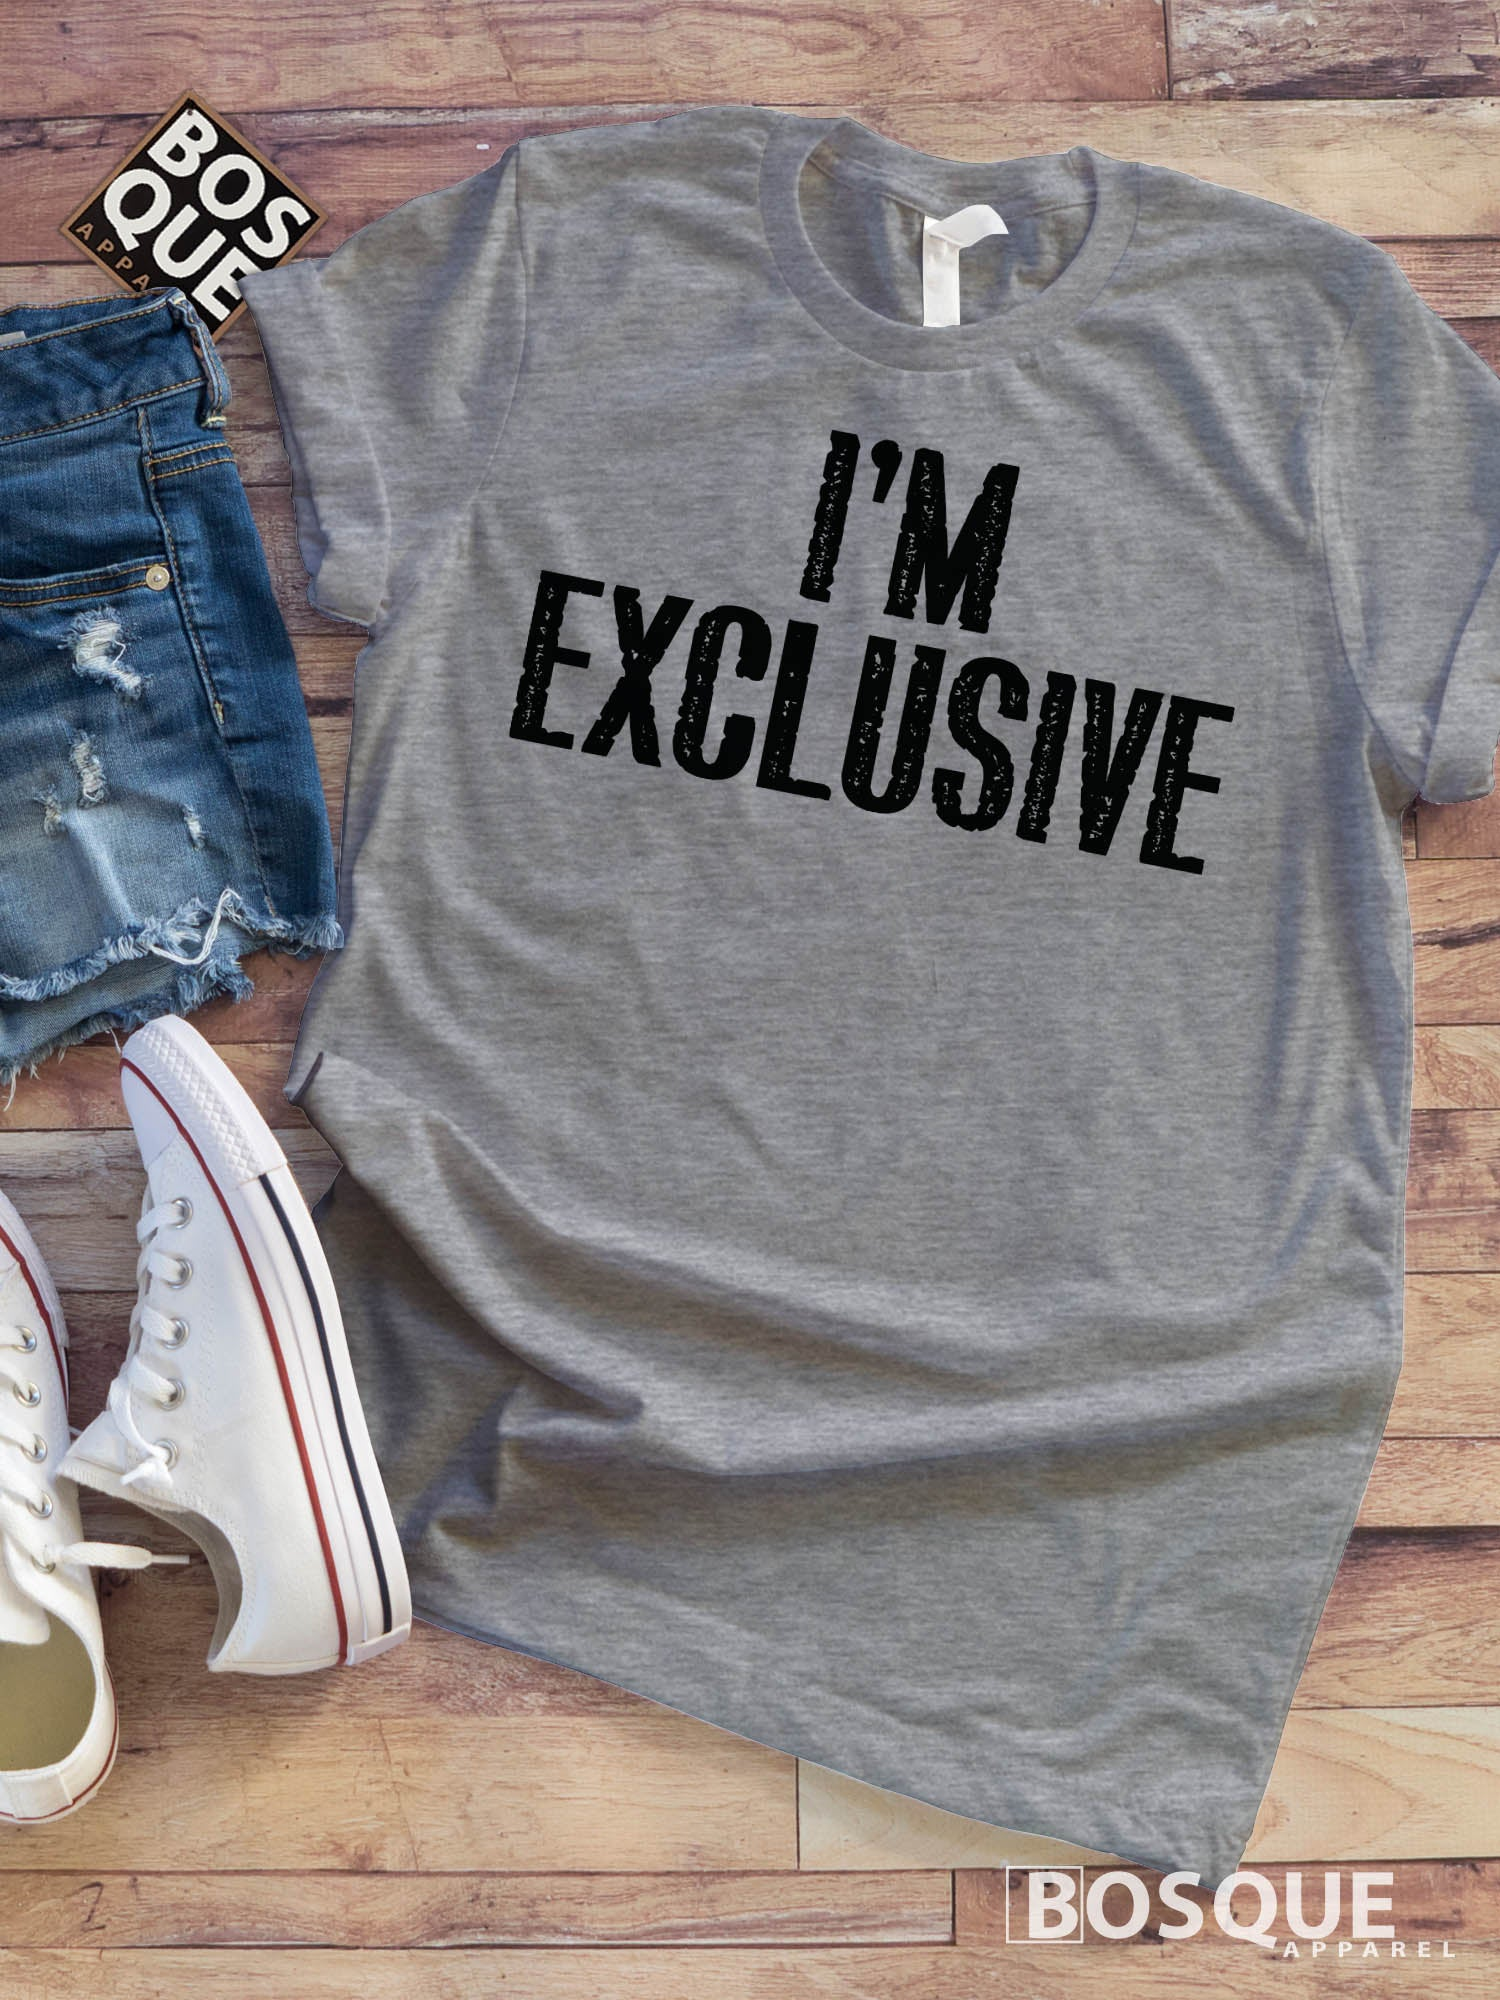 I'm Exclusive - Funny Adult Shirts - Grown Ups - Adultish - Funny Tees for Adults and Parents - Ink Printed T-Shirt